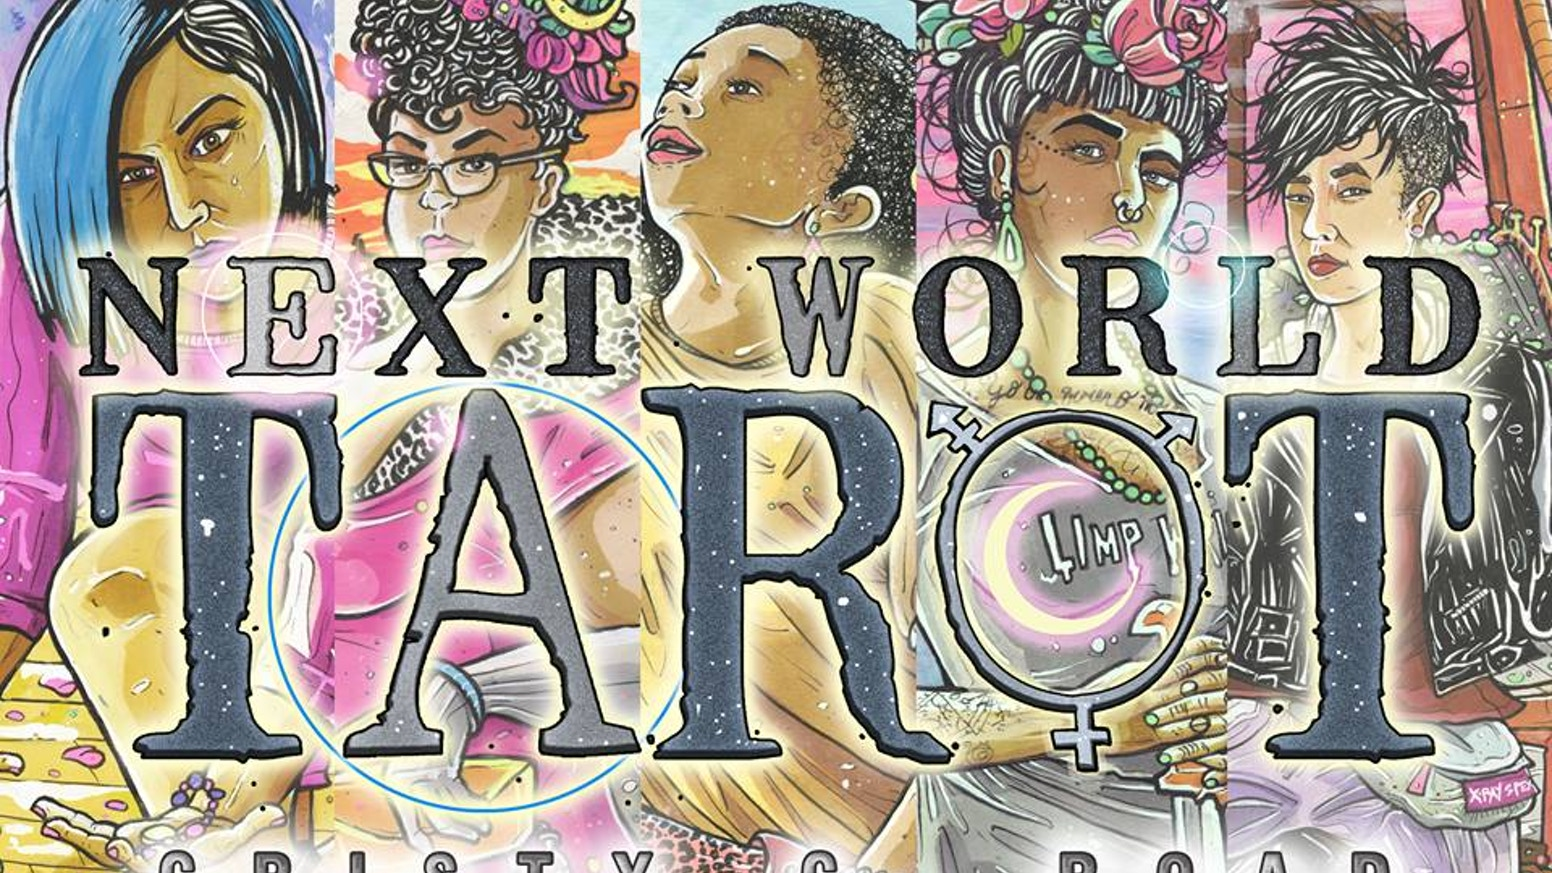 The NEXT WORLD TAROT Card Deck is Cristy C. Road's post-apocalyptic reclamation of magic.